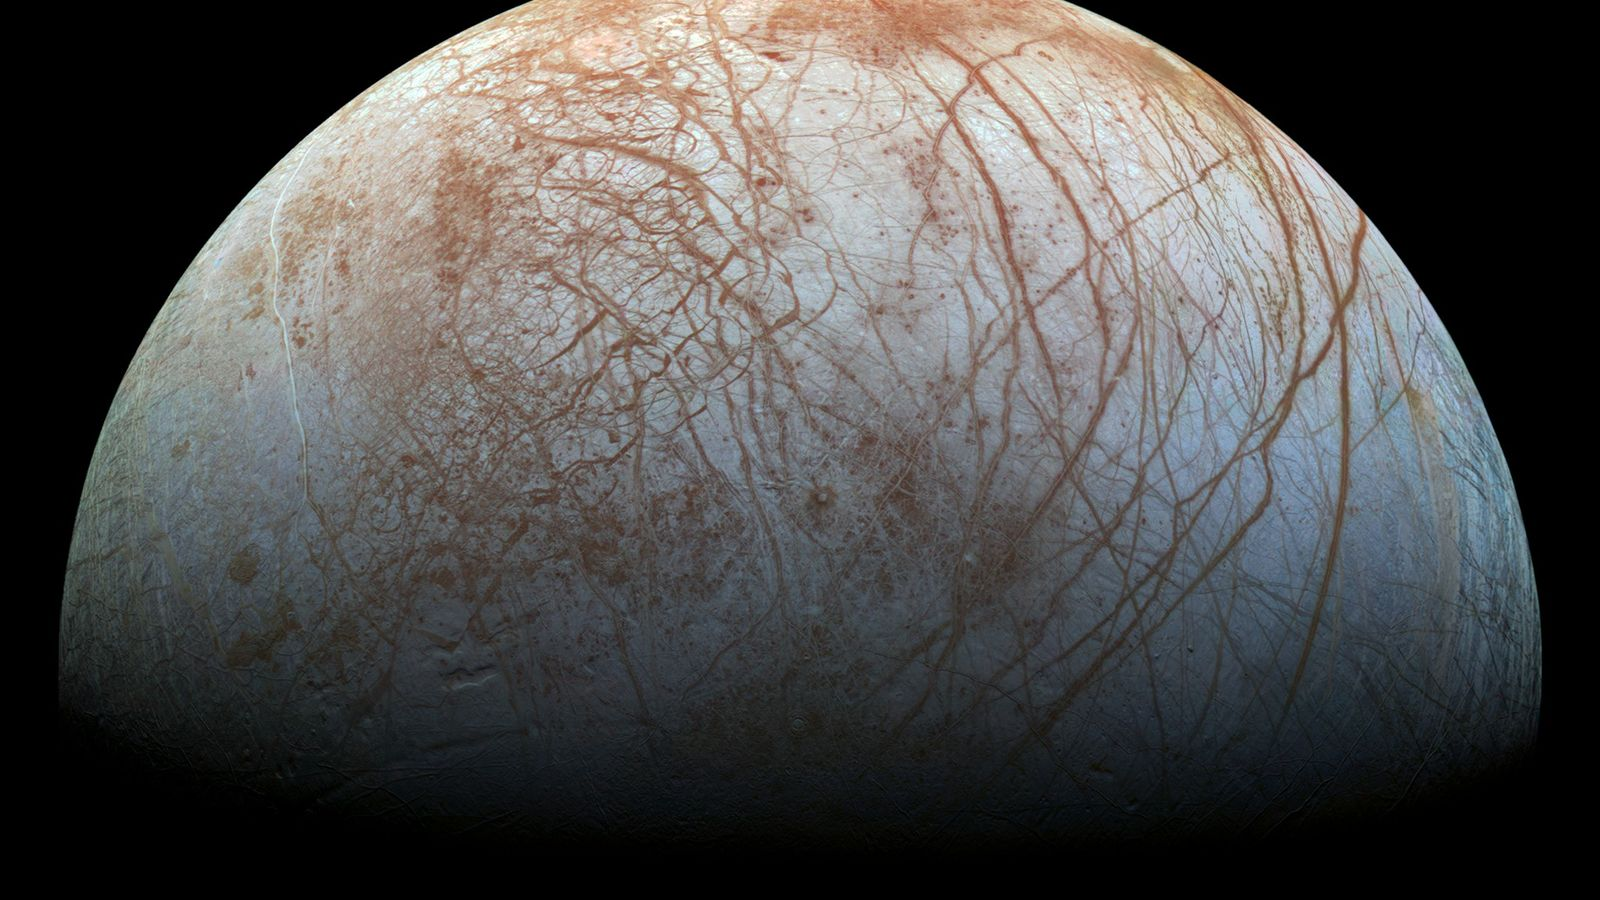 Jupiter's fourth-largest moon Europa has a global ocean that is approximately 40 to 100 miles deep ...